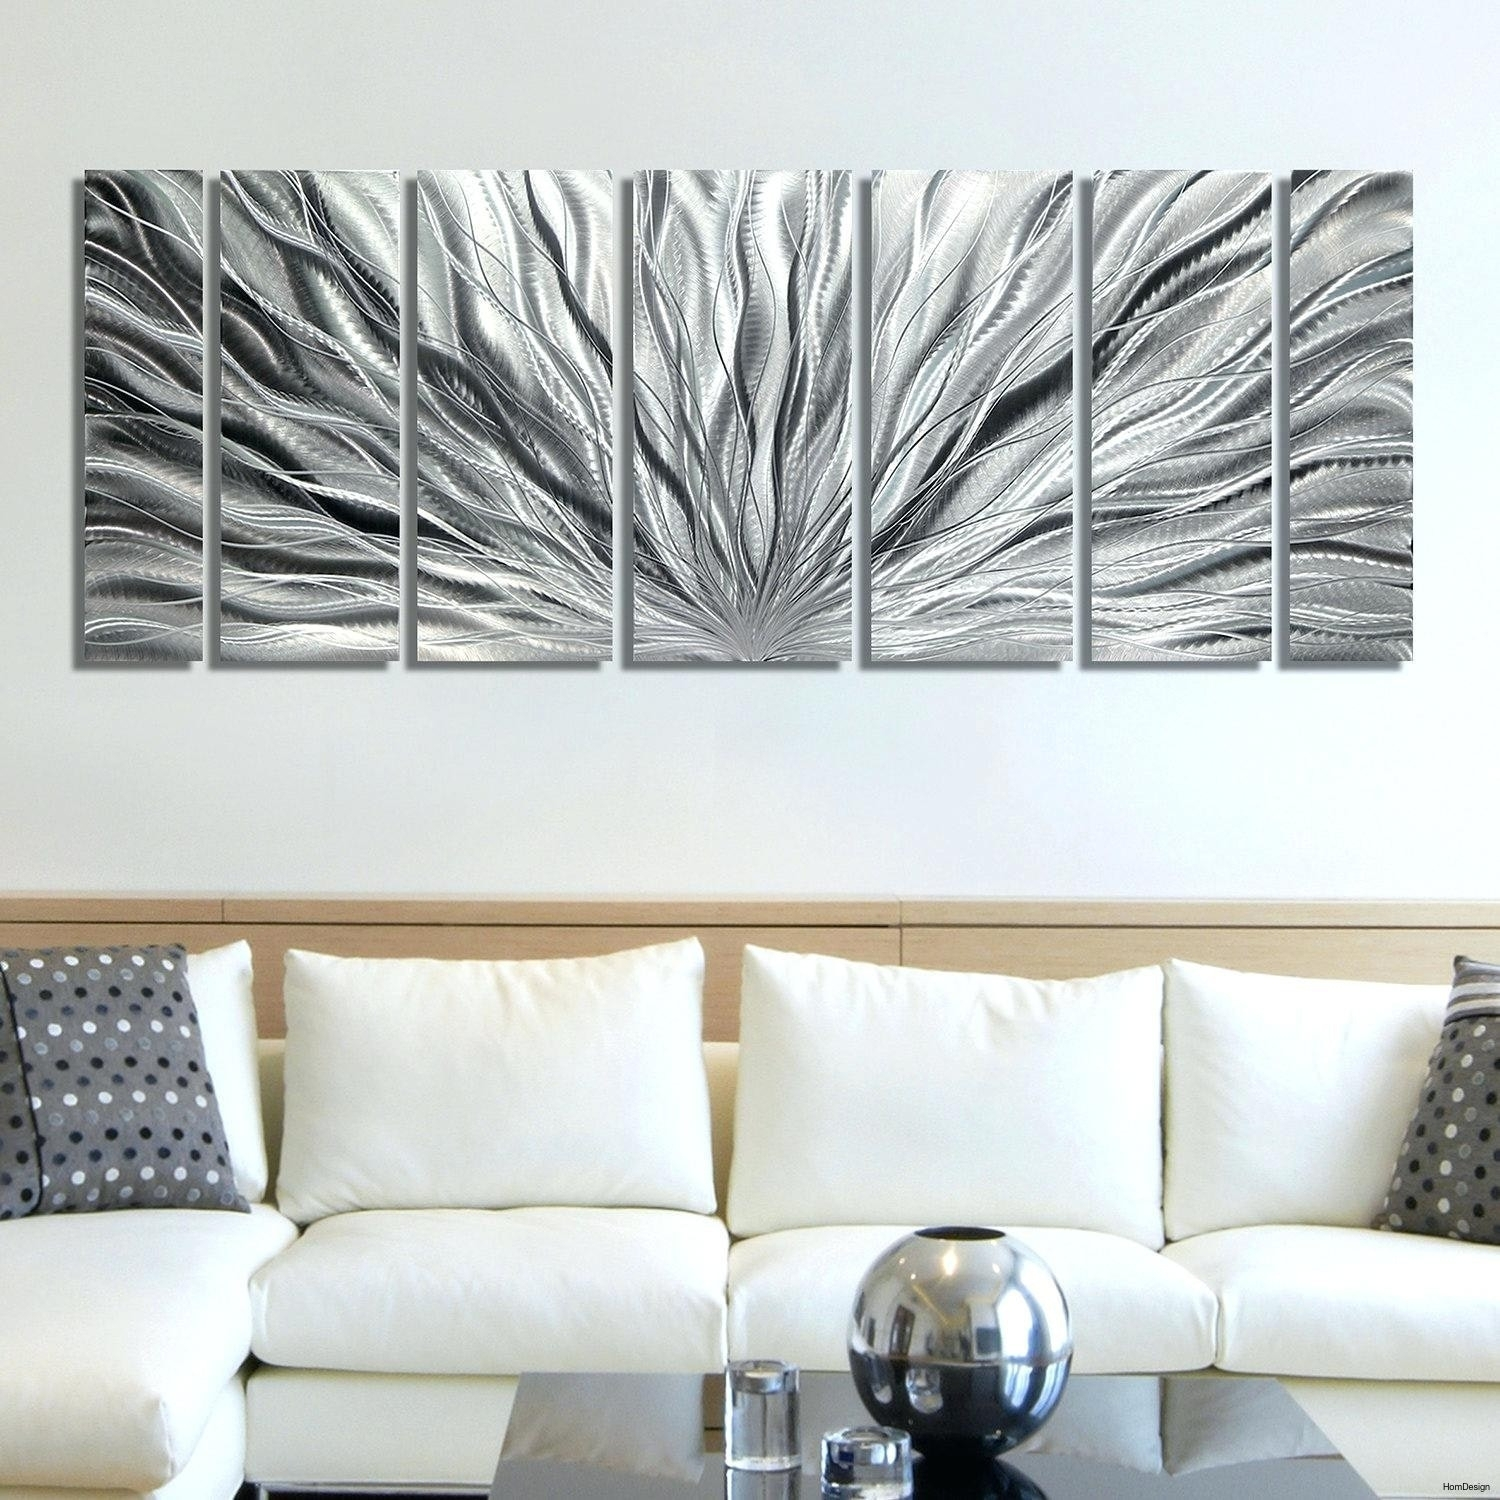 35 Elegant Texas Wall Decor Relating To Texas Wall Art Decor Intended For Texas Wall Art (Photo 16 of 20)